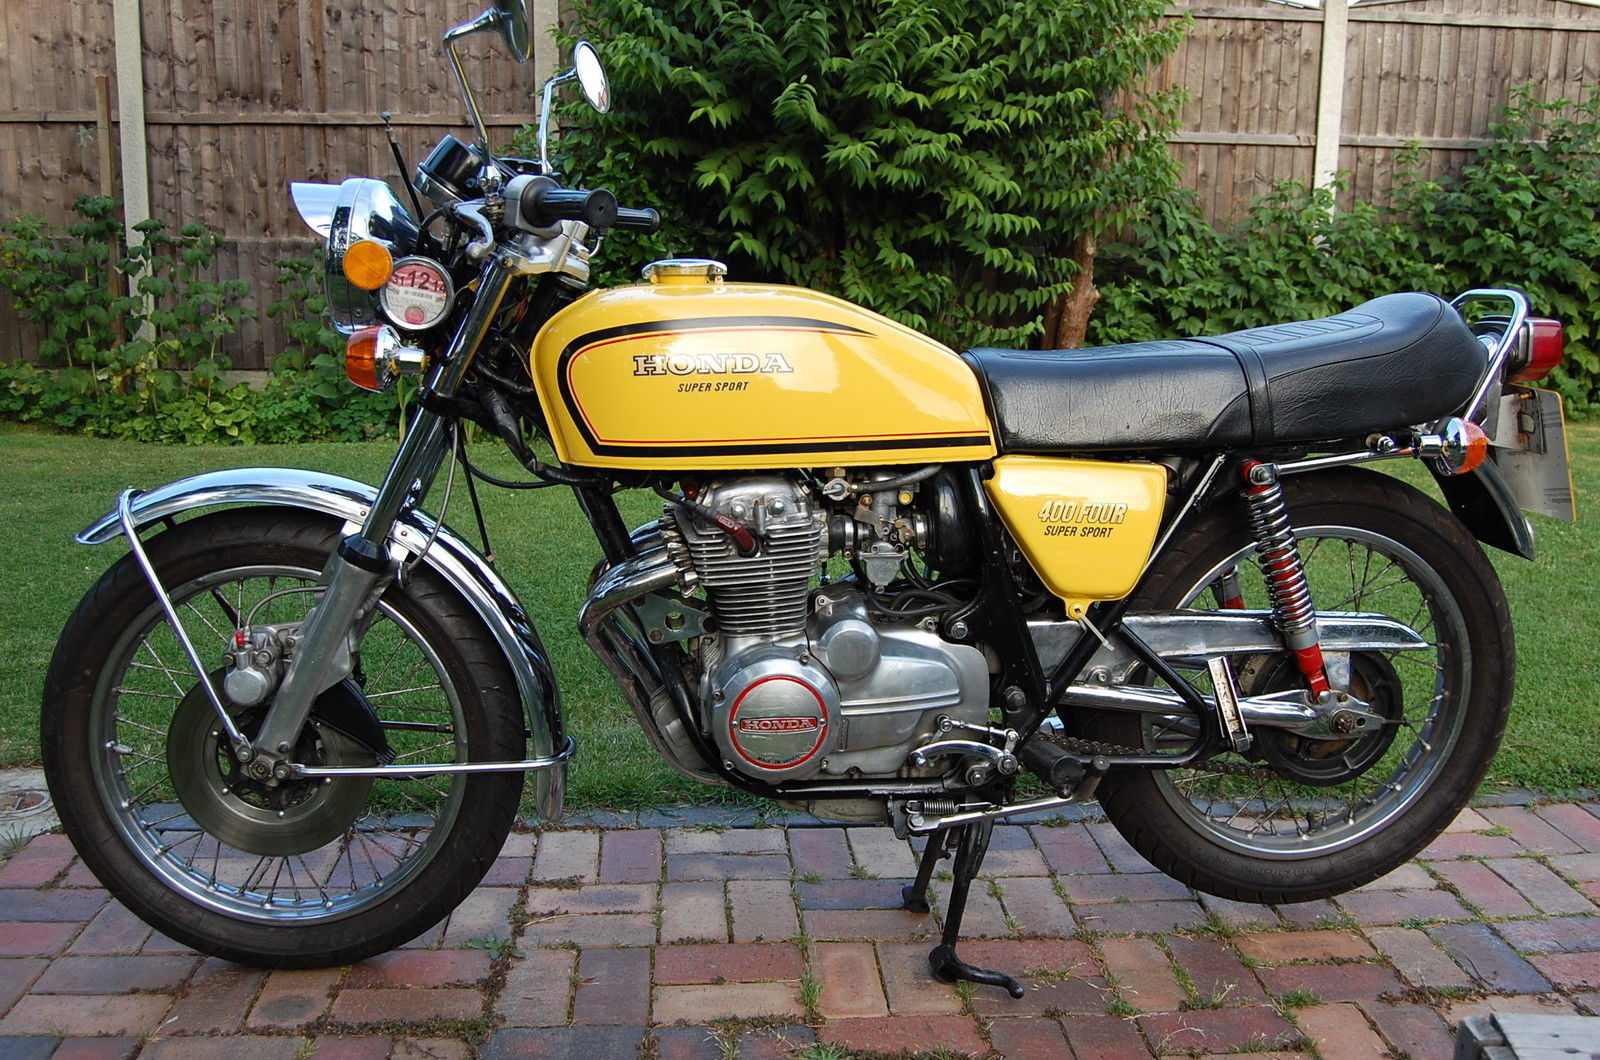 HONDA CB400 FOUR 400 4 F2 1978 CLASSIC MOTORCYCLE